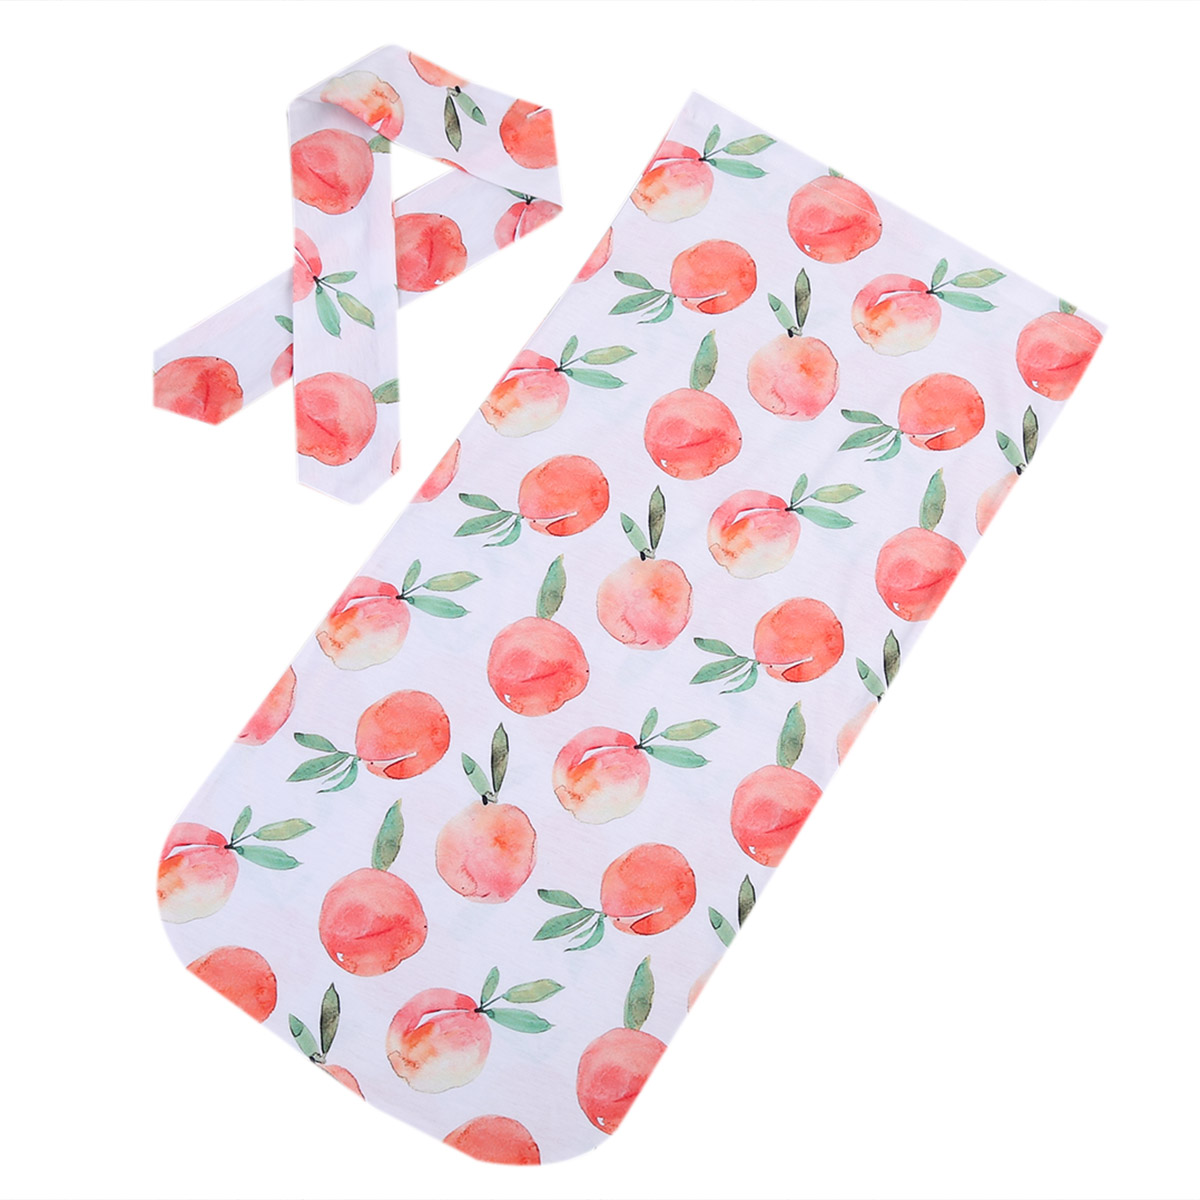 Newborn Infant Baby Cute Swaddle Blanket Baby Comfortable Sleeping Swaddle Muslin Wrap Headband